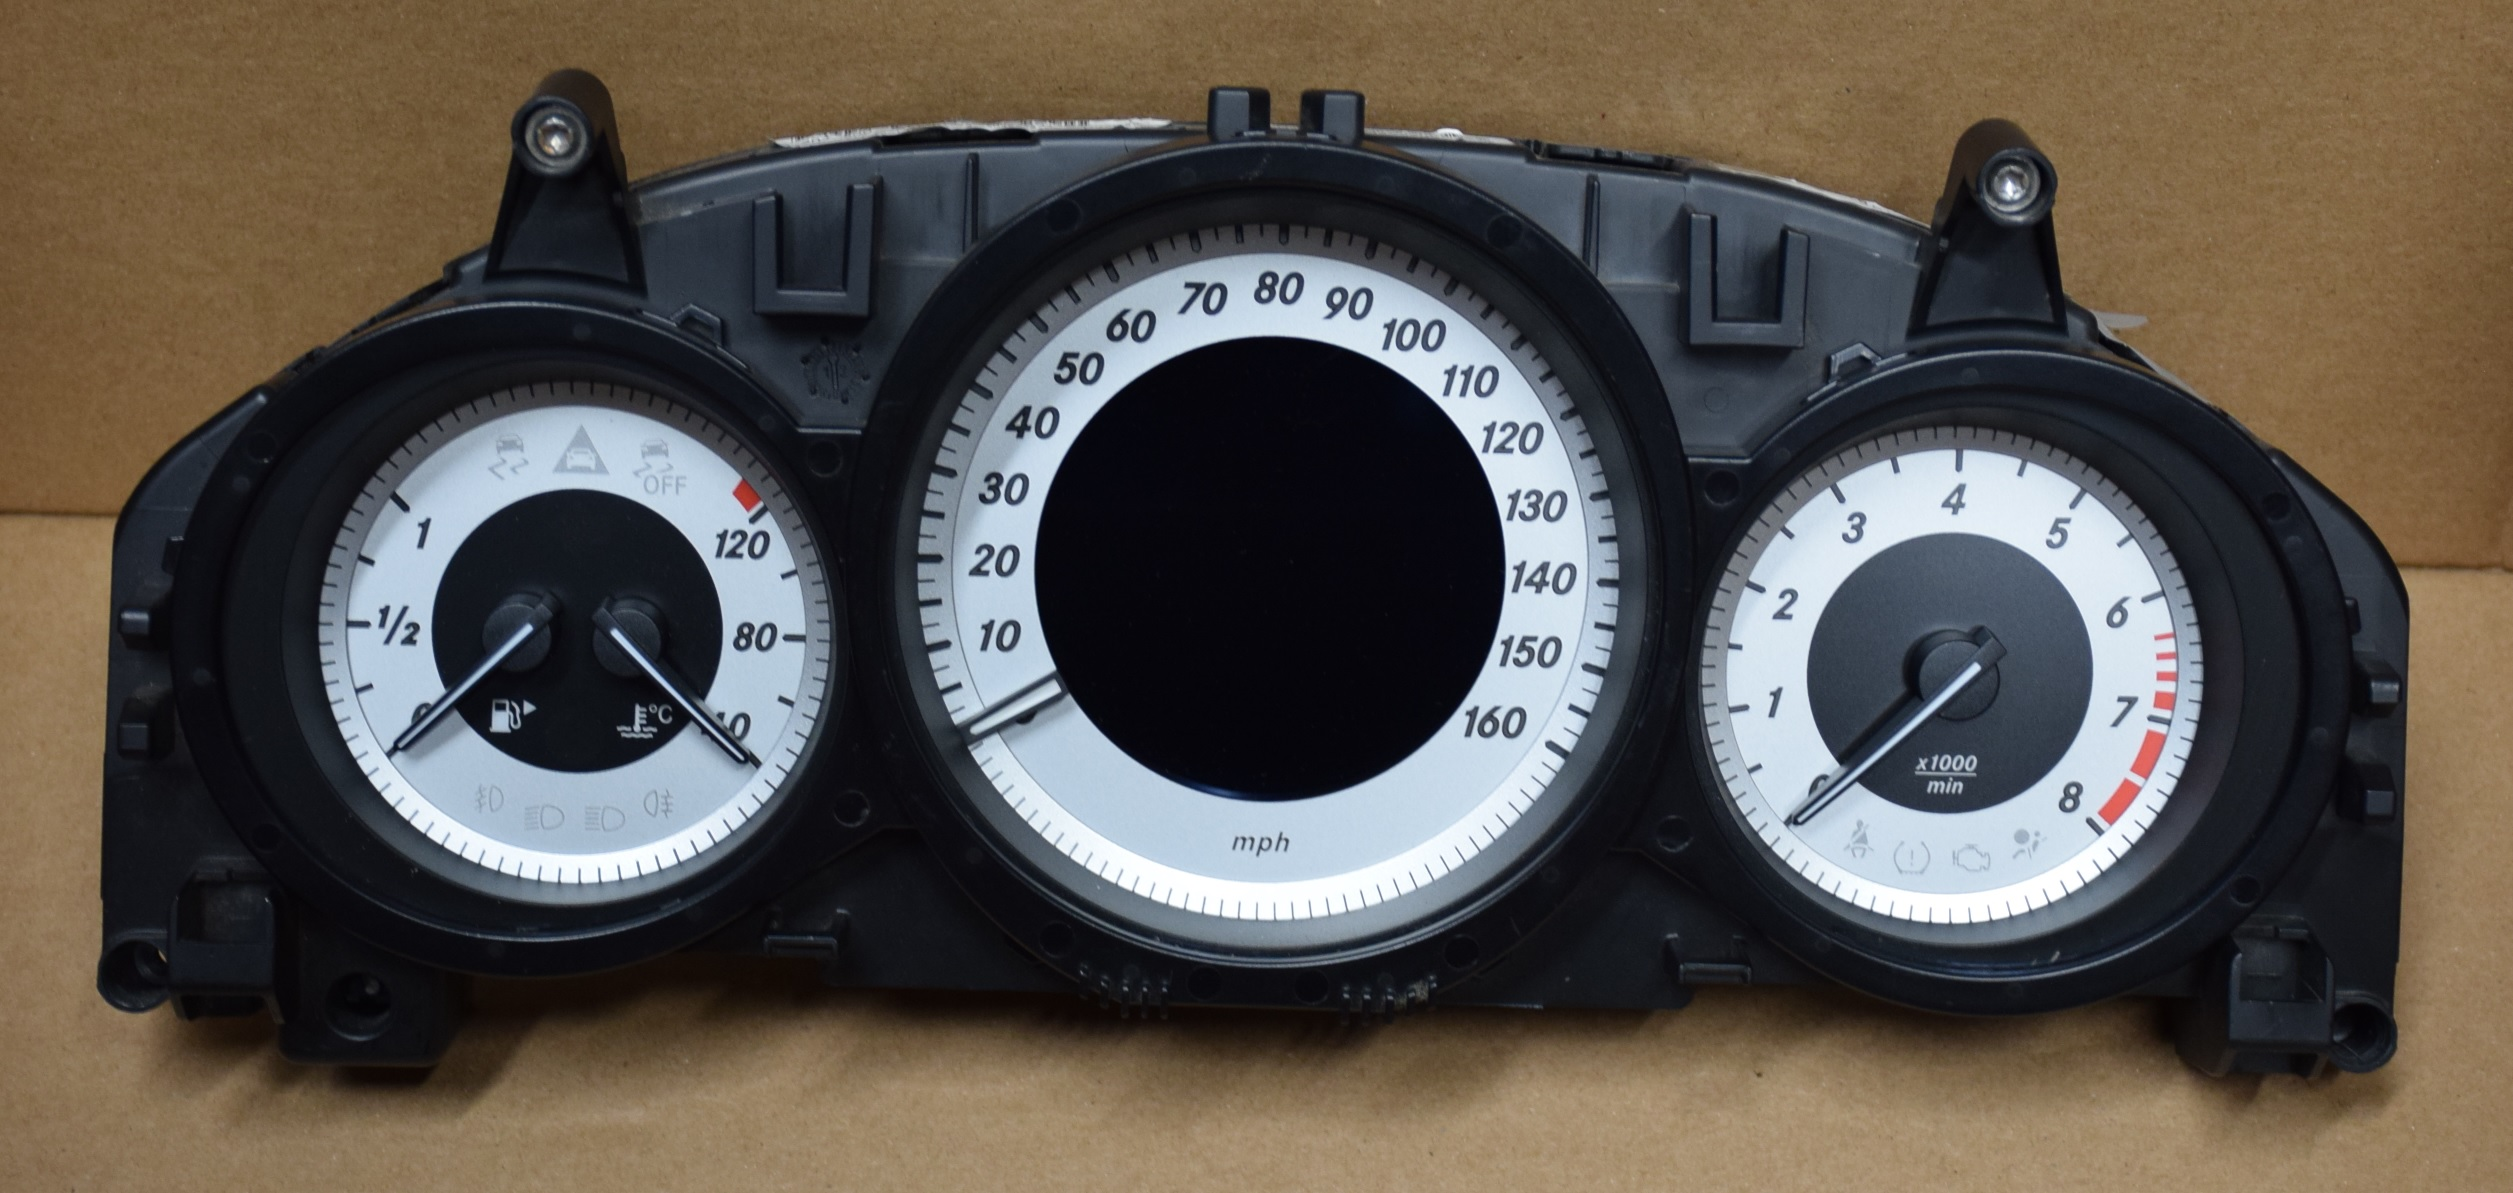 2012-2015 MERCEDES C250, C300, C350,W204 USED DASHBOARD INSTRUMENT CLUSTER  FOR SALE (MPH)